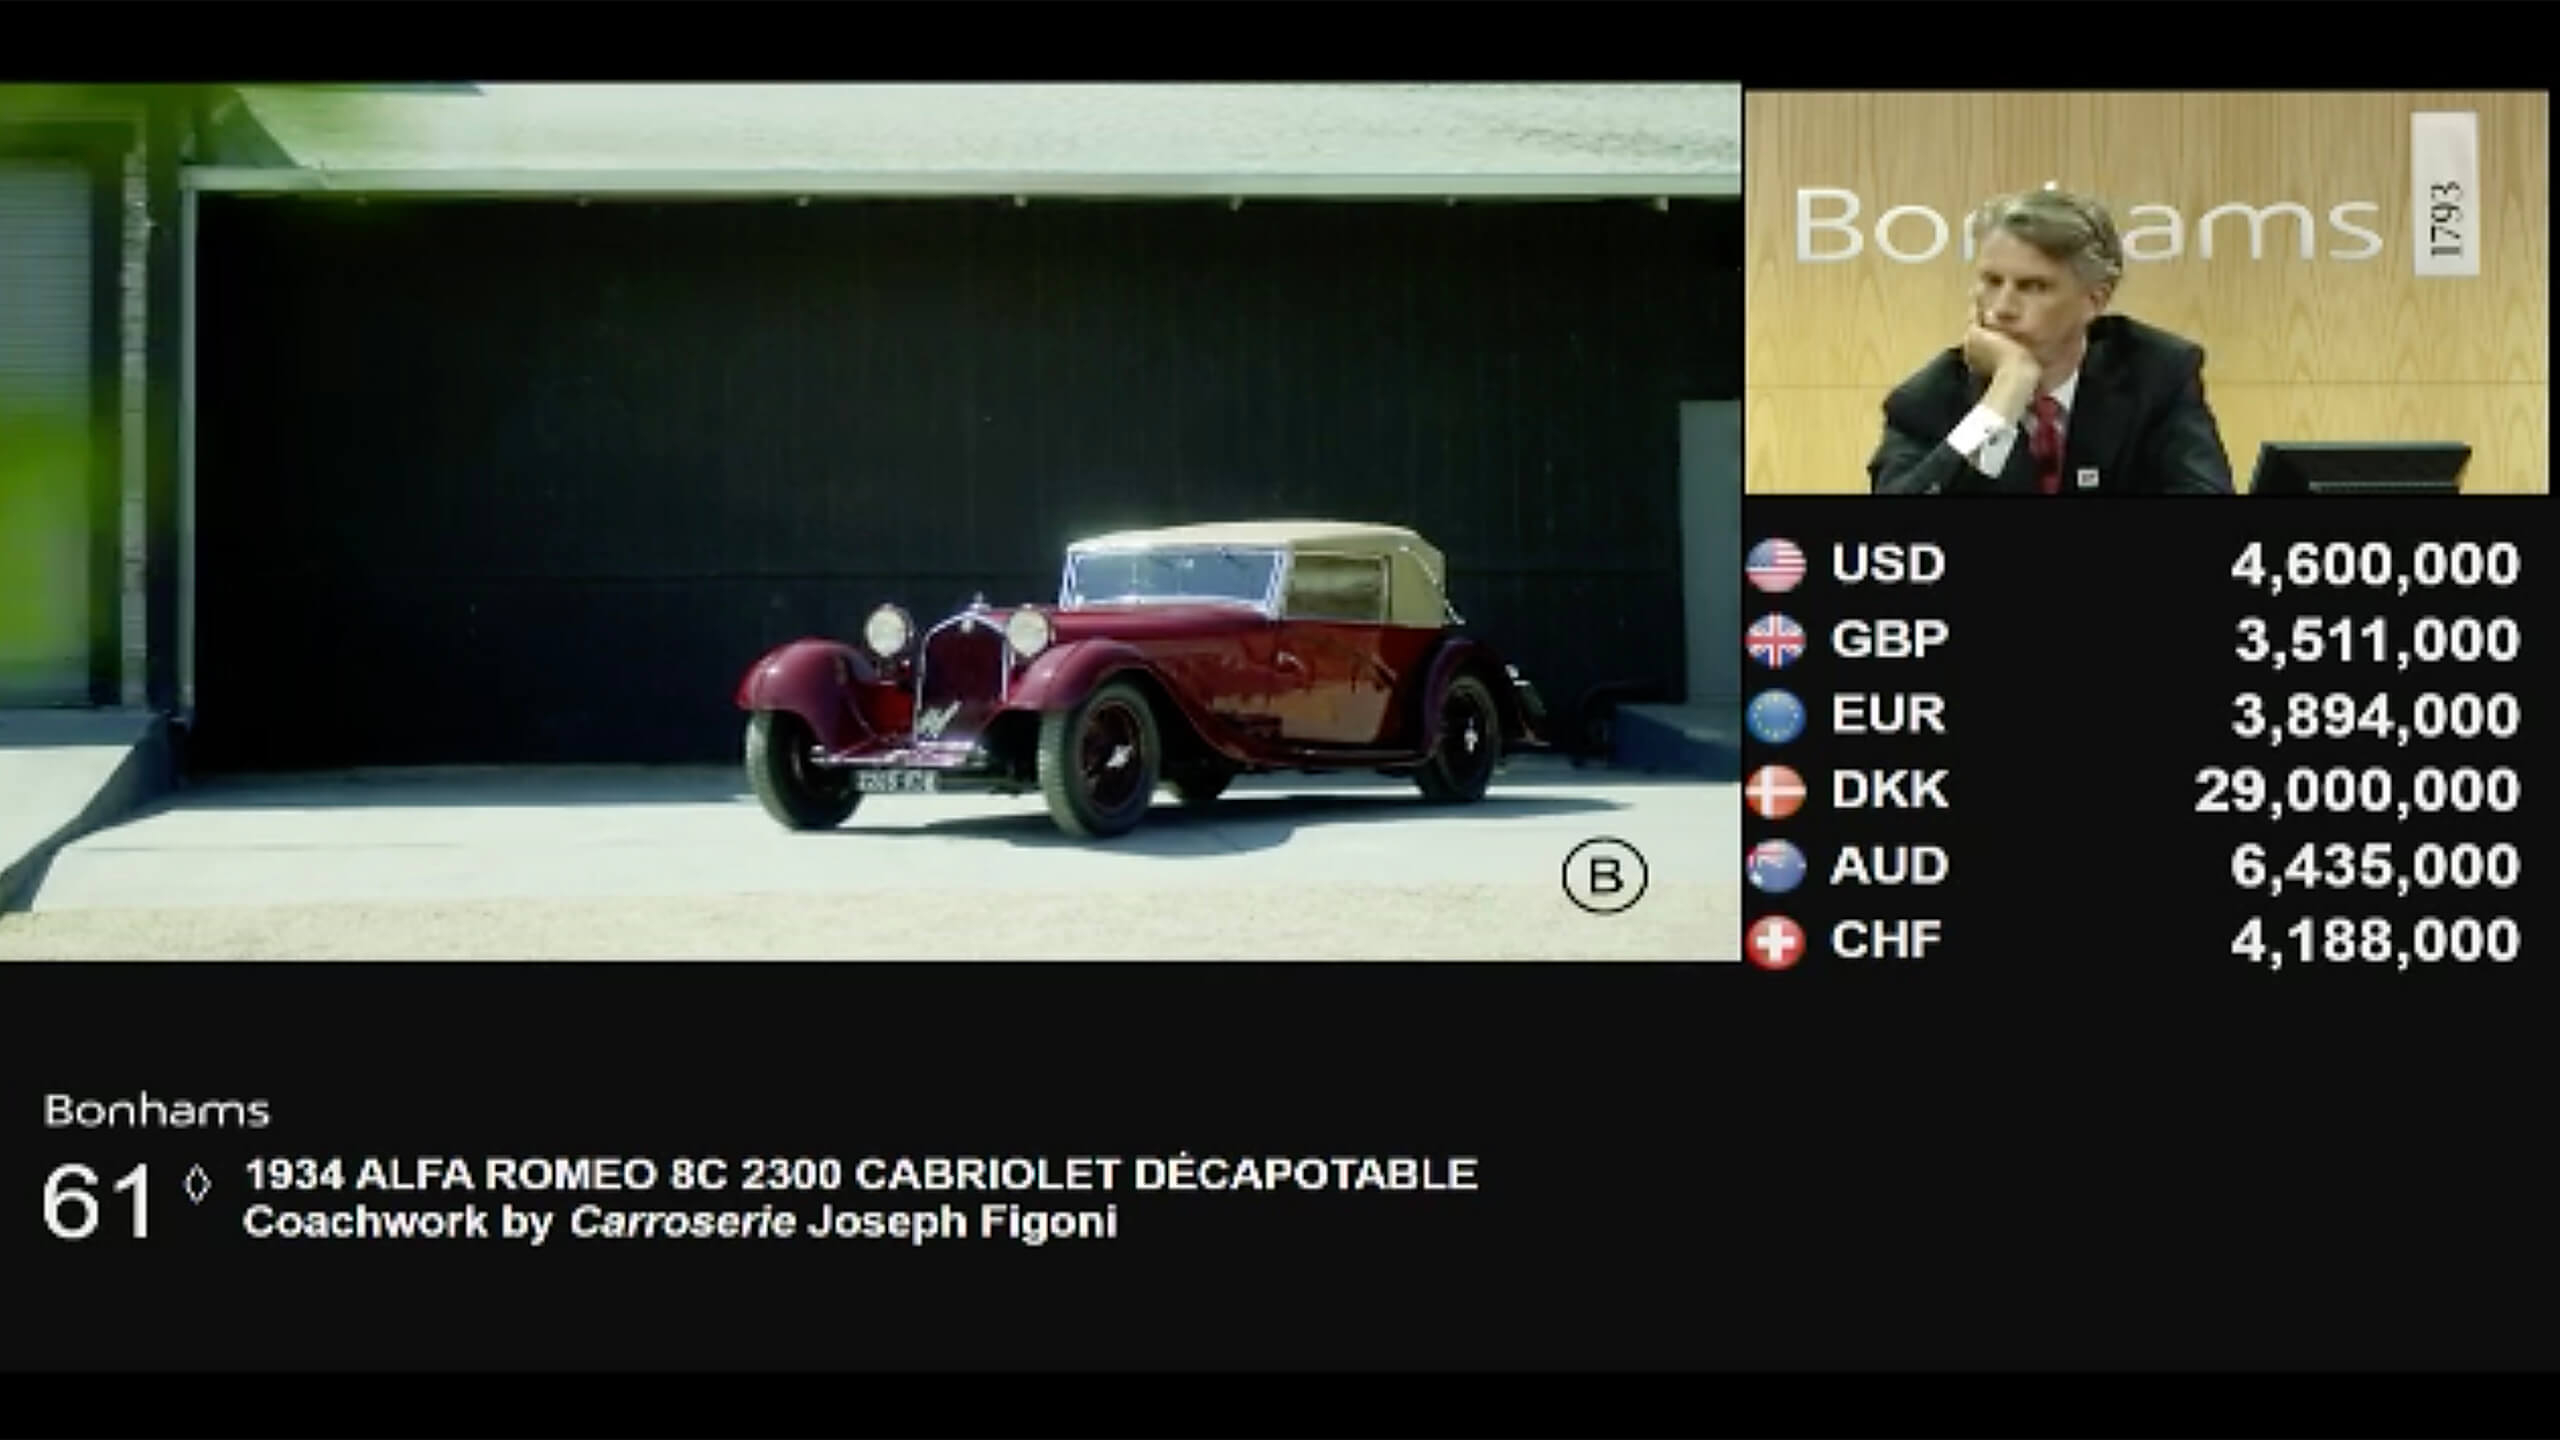 $12.5m for Bonhams at its 2020 Quail Motorcar auction